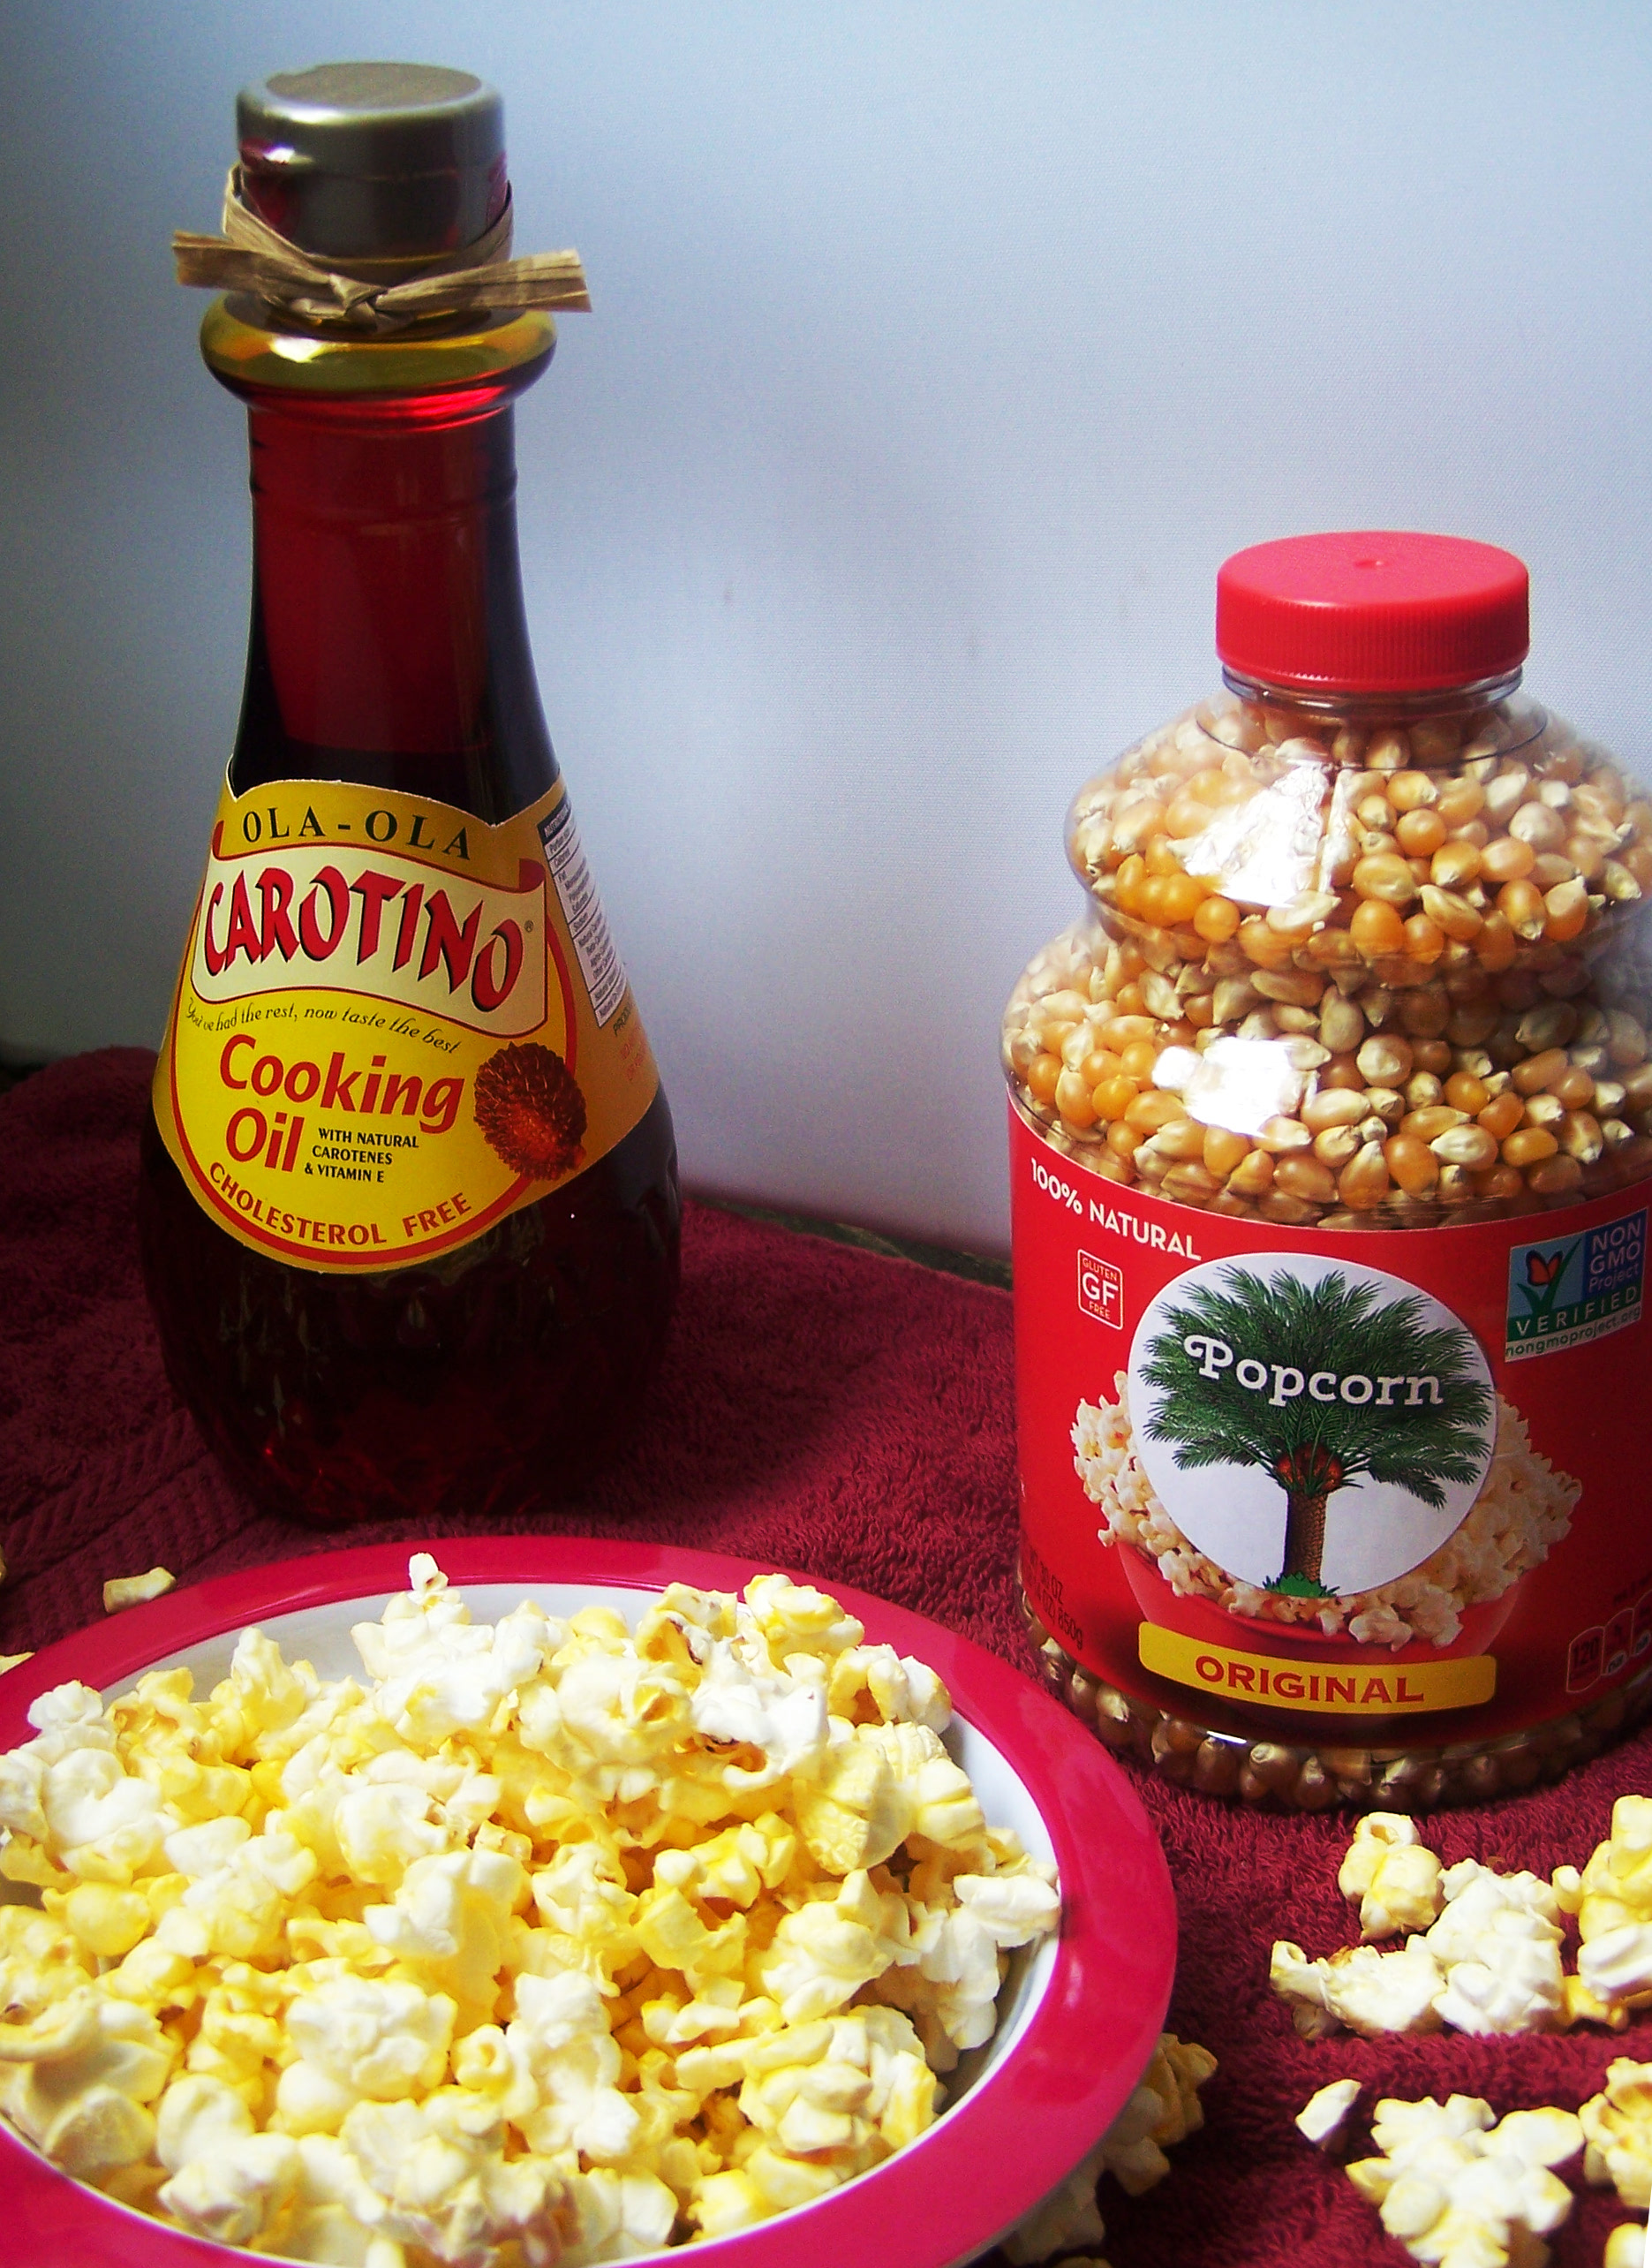 POPCORN sustainable malasian palm oil cooking baking food foodies blog bloggers pr friendly review snacks treats baking bakers cookbook